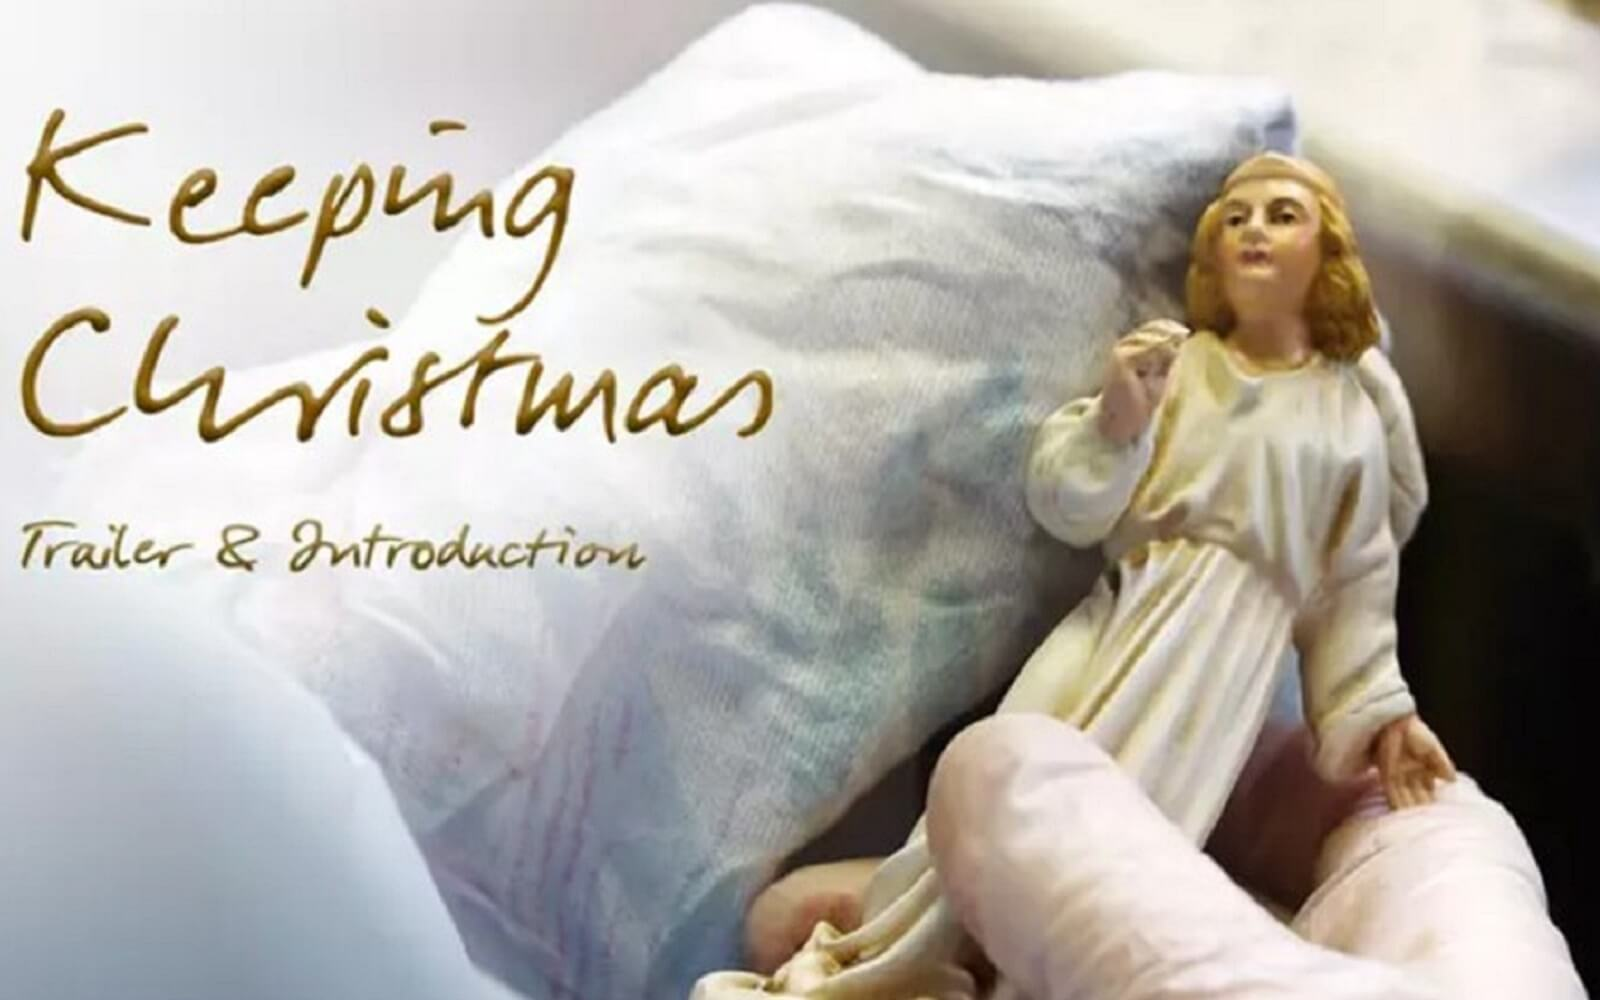 Keeping Christmas Trailer